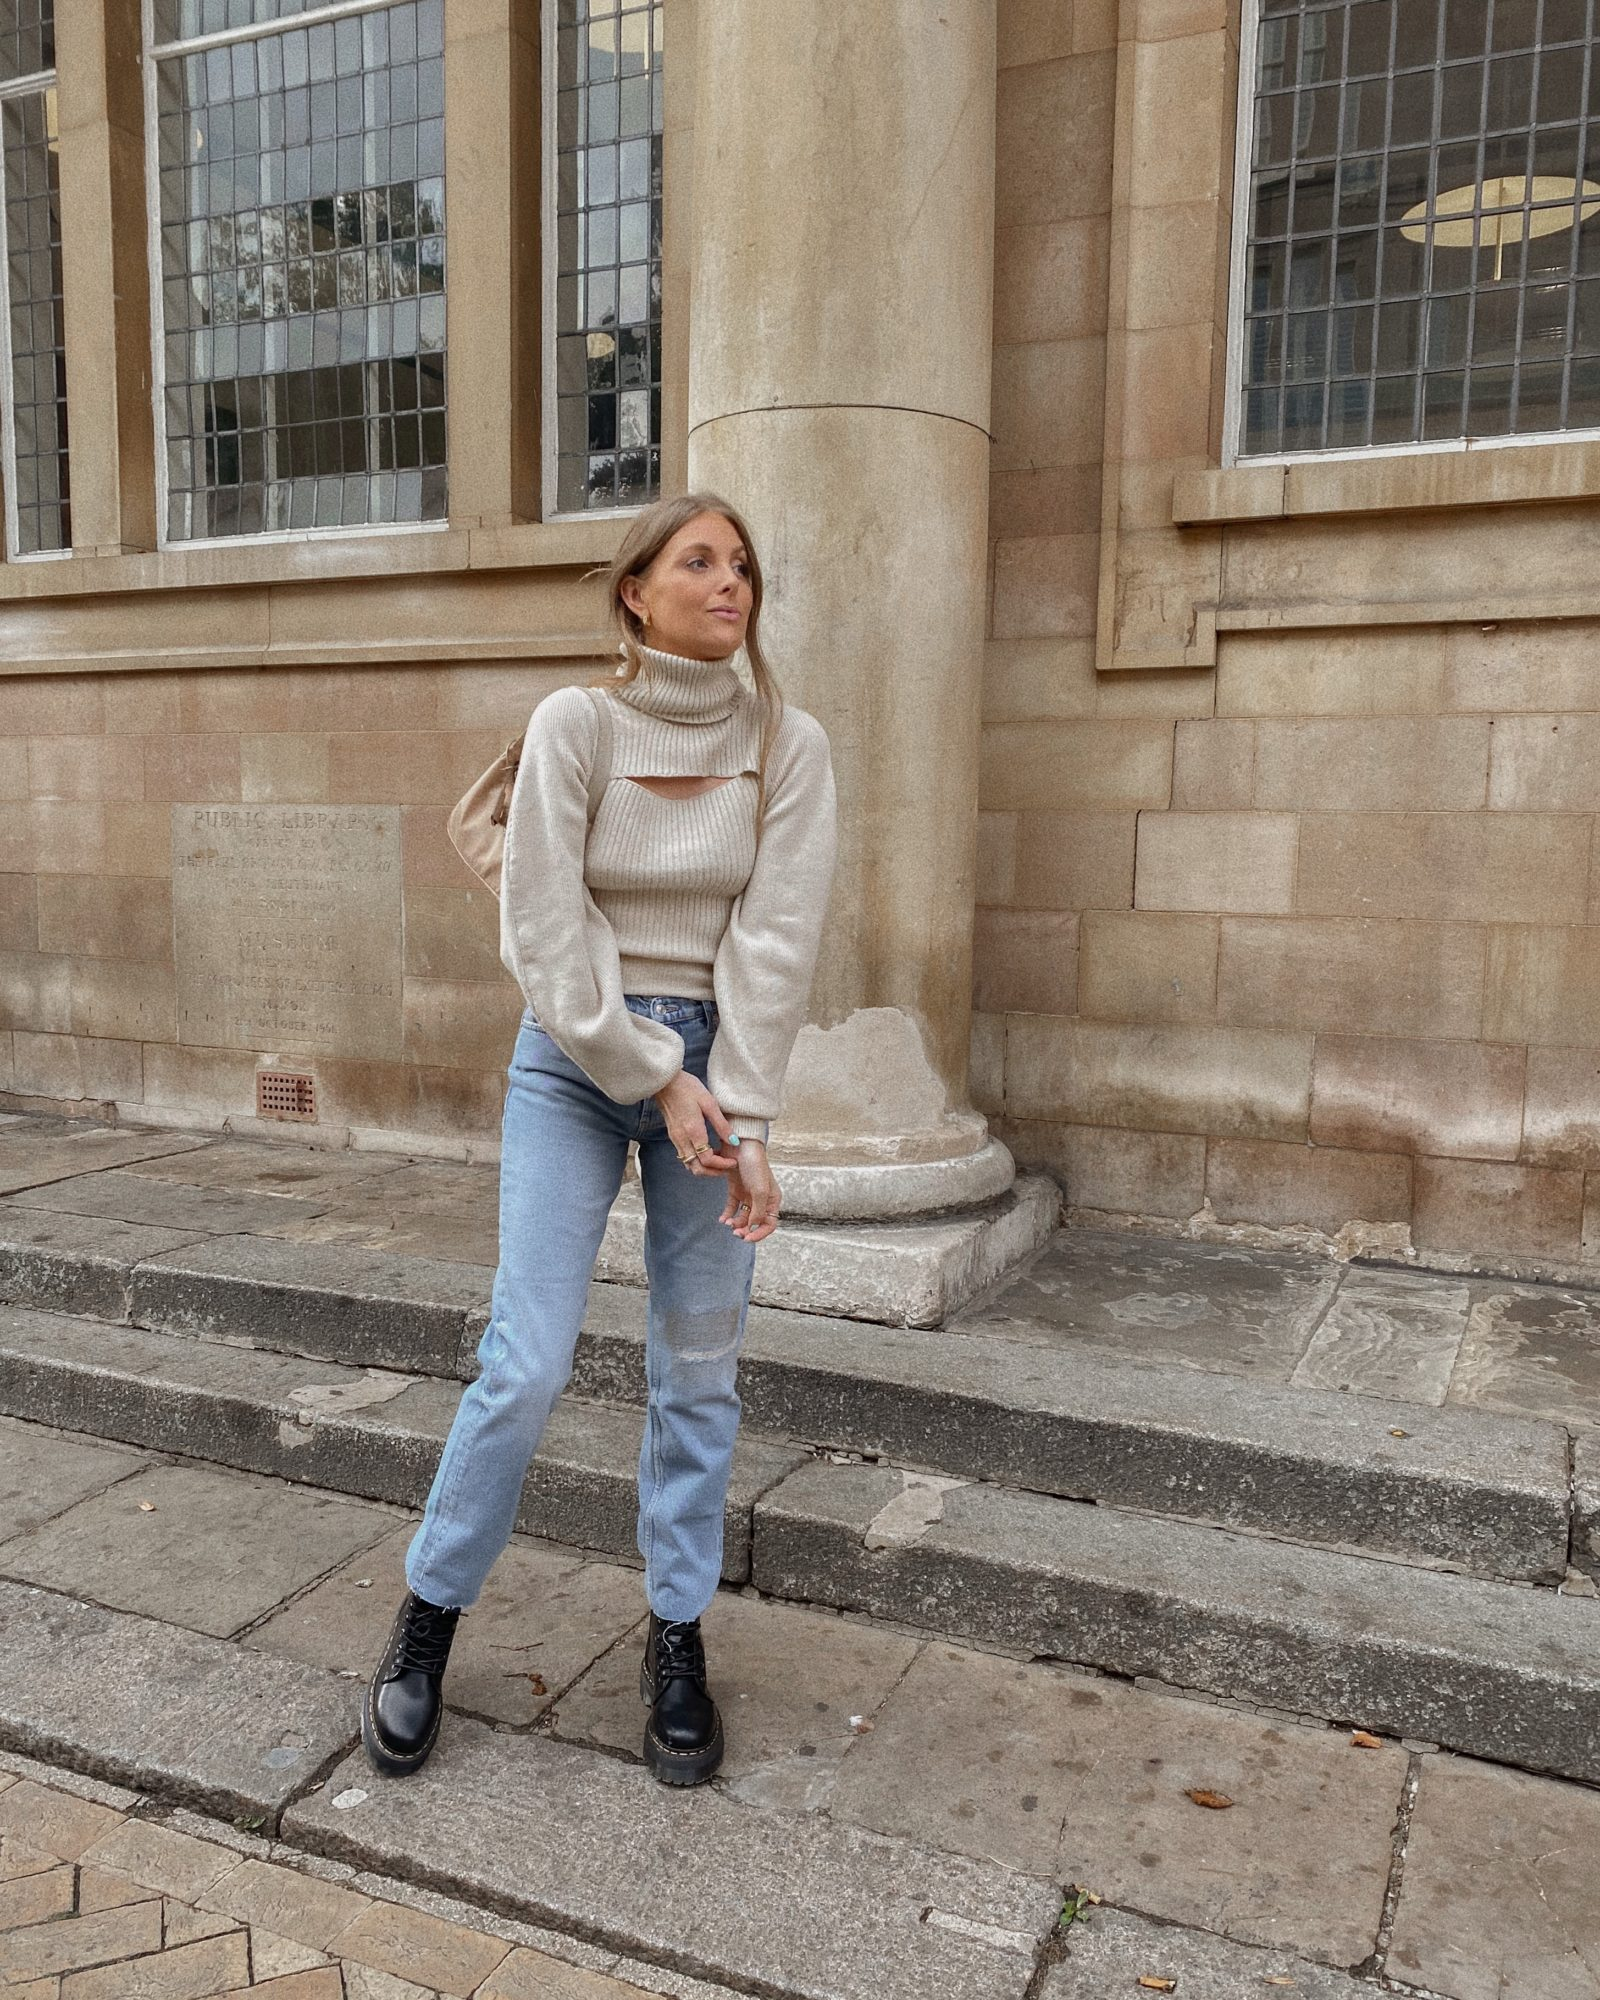 Autumn Knits - Free People Winter Outfit